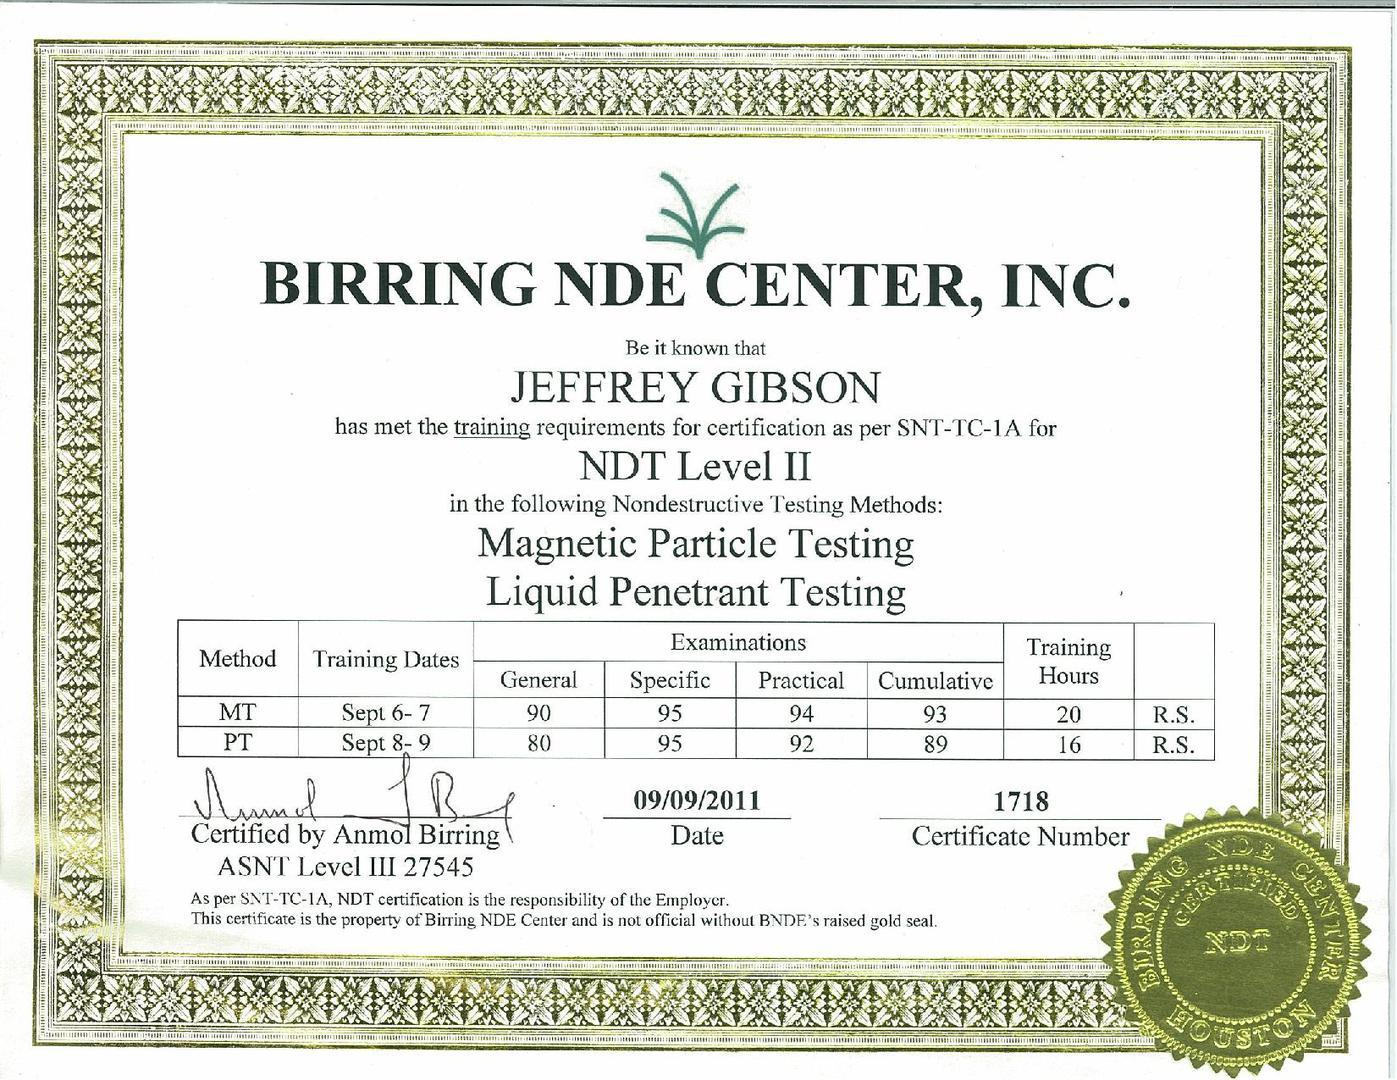 Jeffrey Gibson AWS Certified Welding Inspector & Nace Level 2